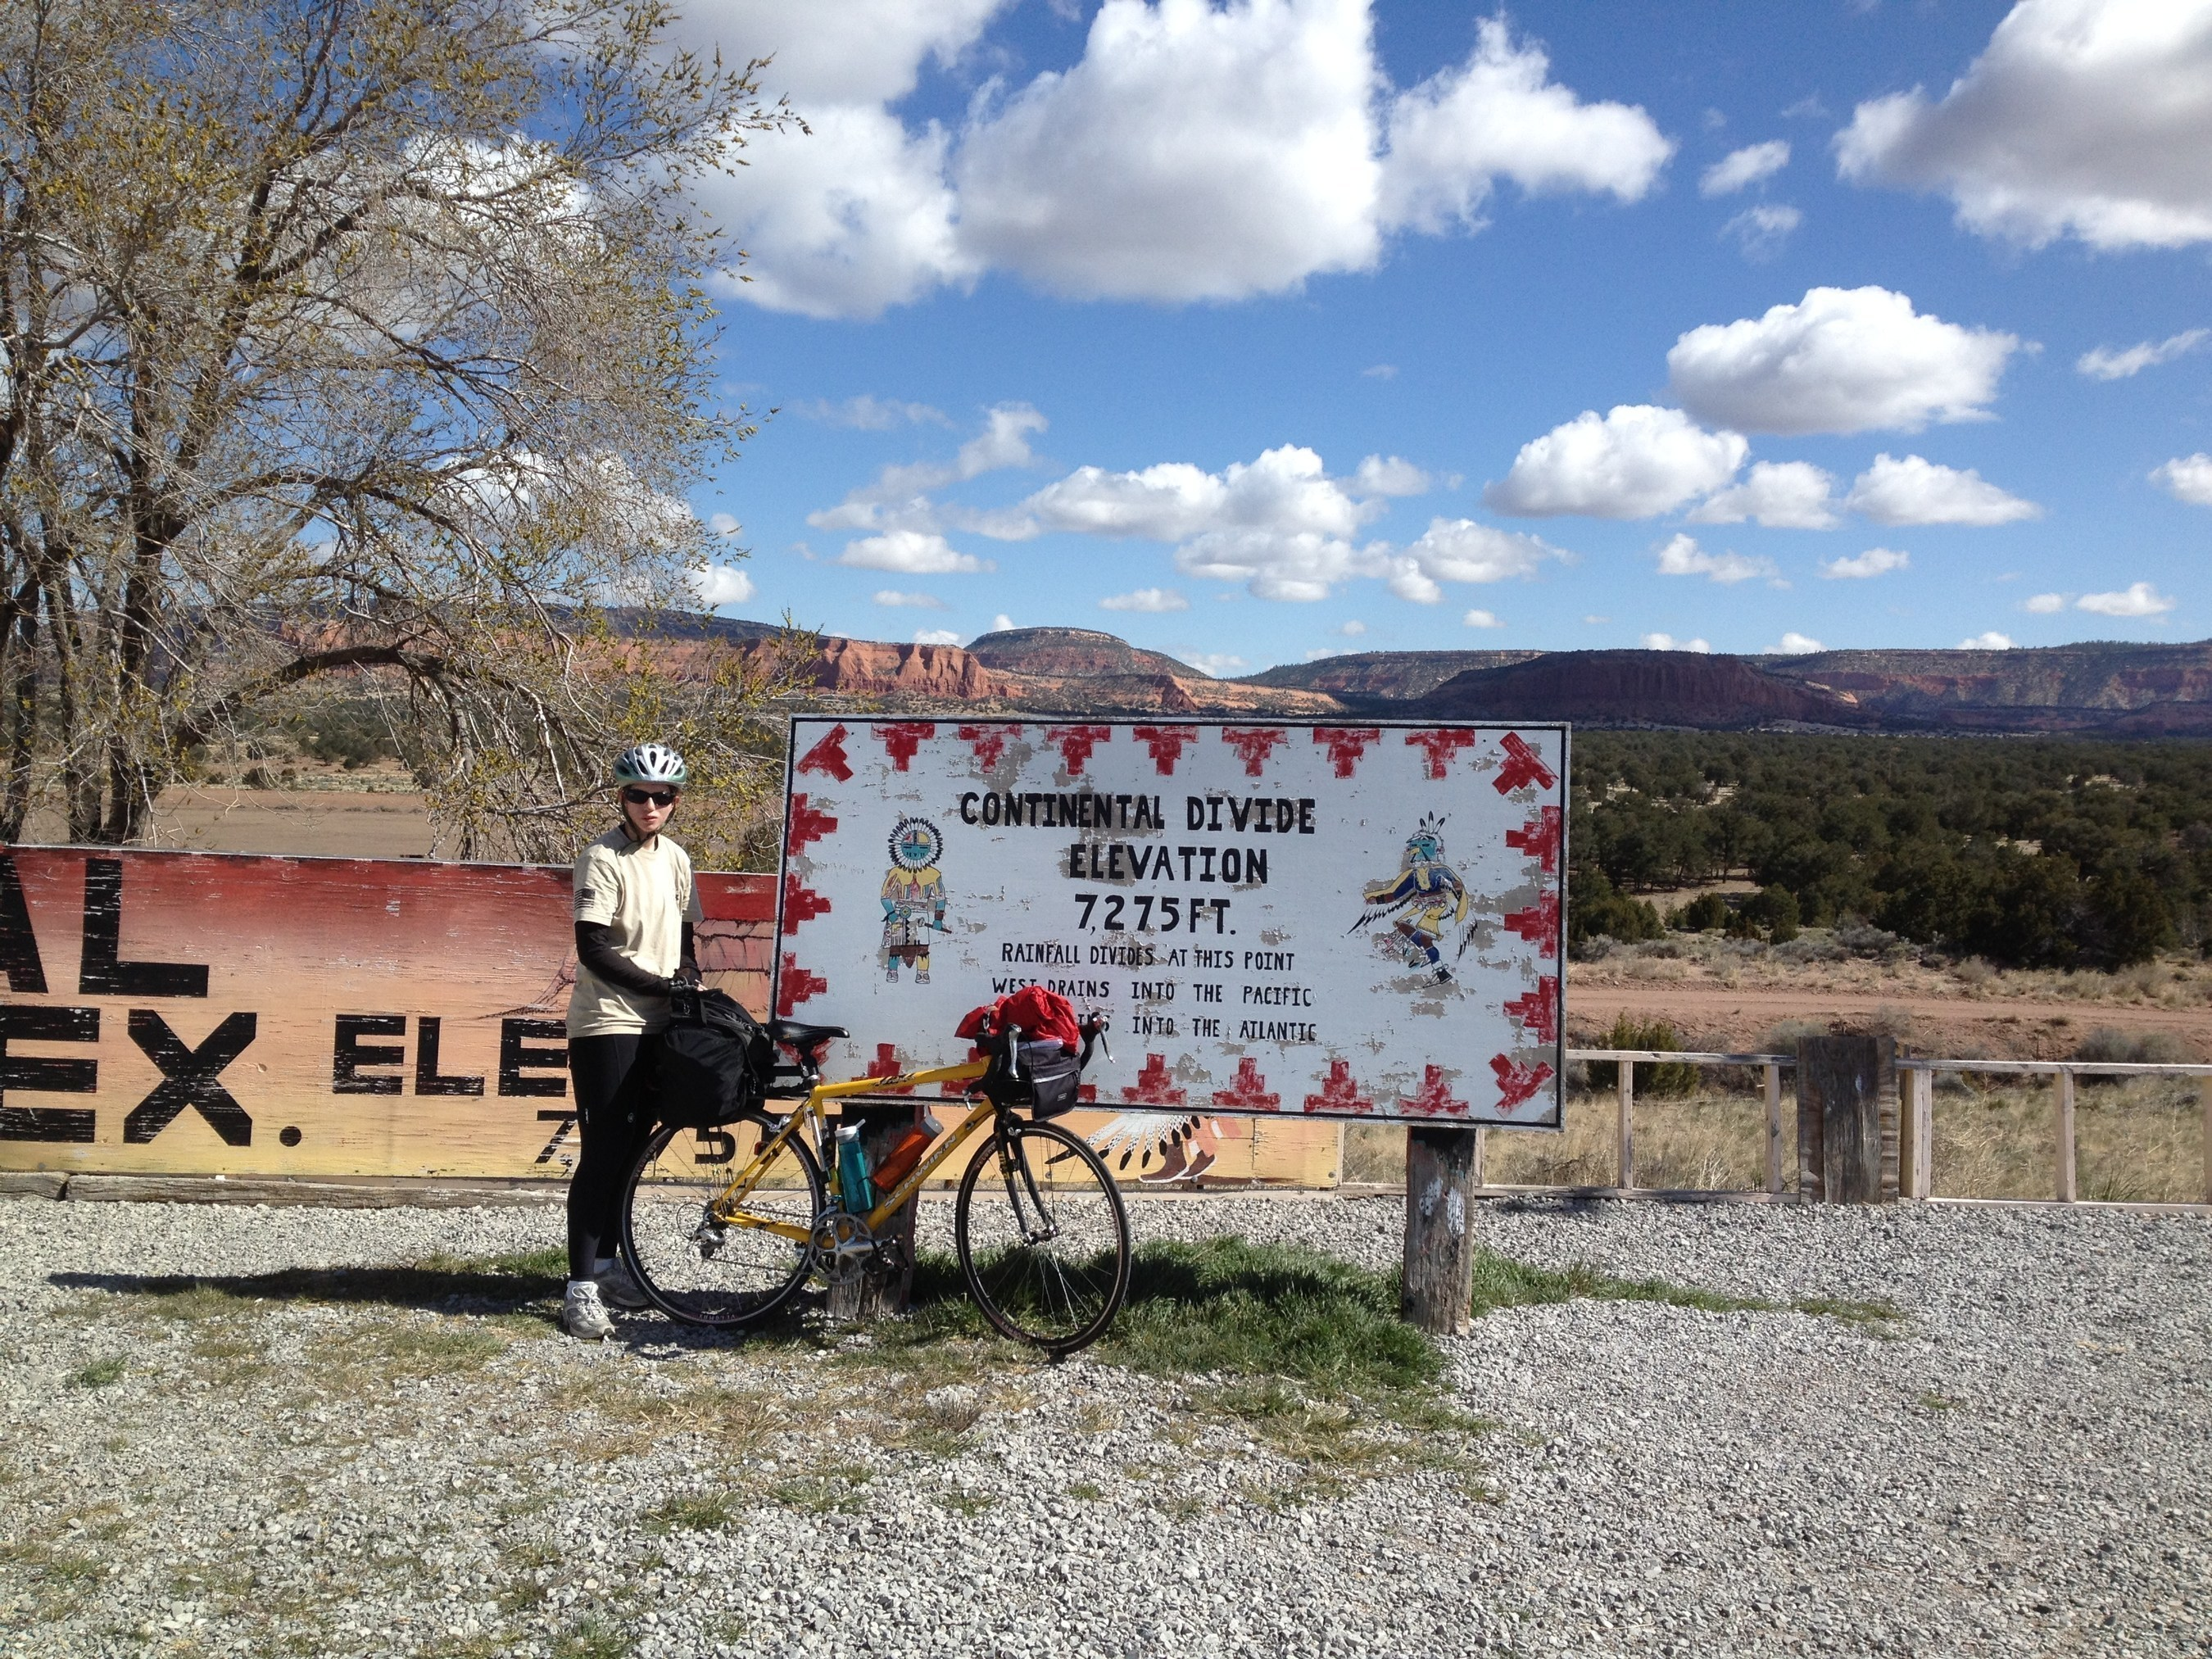 Patricia Waiwood at the Continental Divide during her CA to NY ride in 2014